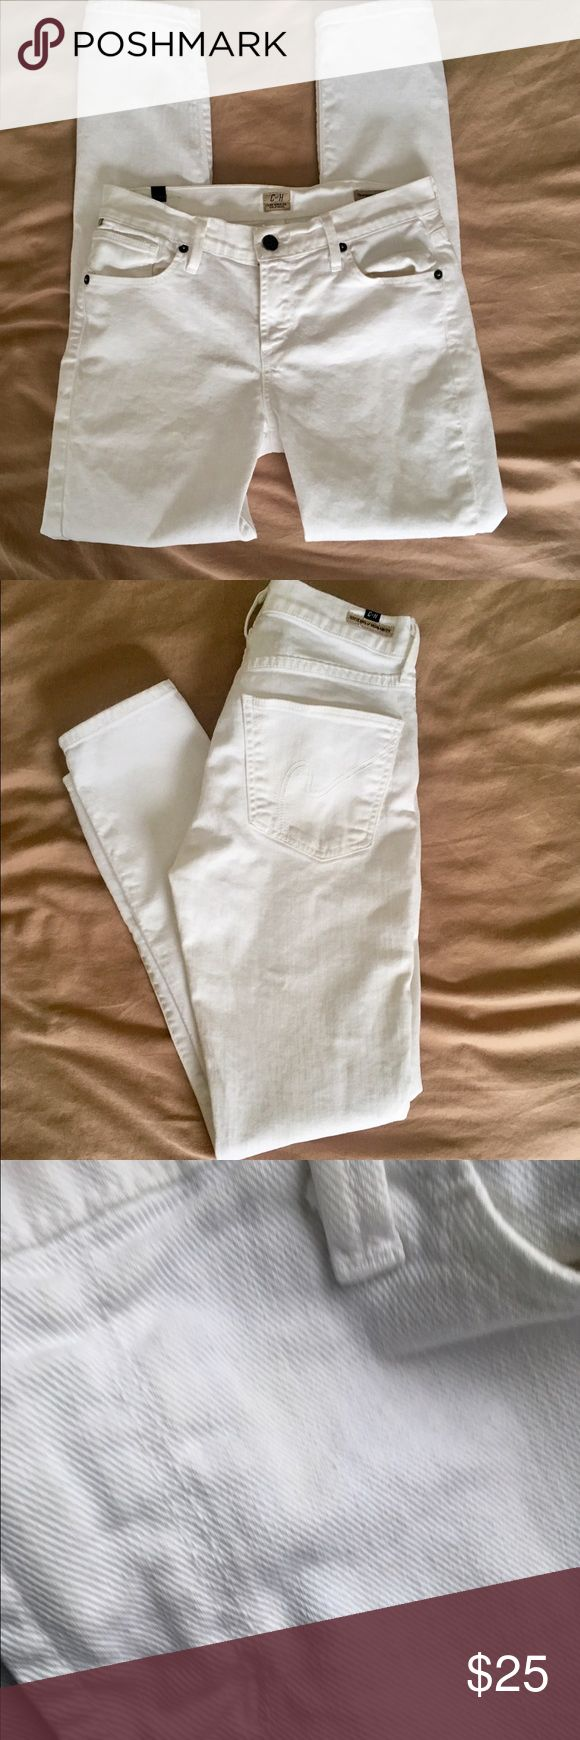 Citizens of Humanity Thompson Cropped Skinnies These Citizens of Humanity white jeans are the Thompson medium rise cropped skinny style.  Size 26. Measures 13.25 inches across waistband and has a 27.5 inch inseam.  Very faint discoloration in front by fly and on back left pocket as pictured. Only noticeable when very, very closely inspected (during my microscopic examination for sale). Pictures included. Cuffs and knees white with no stains or scuffs.  10% Bundle discount in my closet💕…